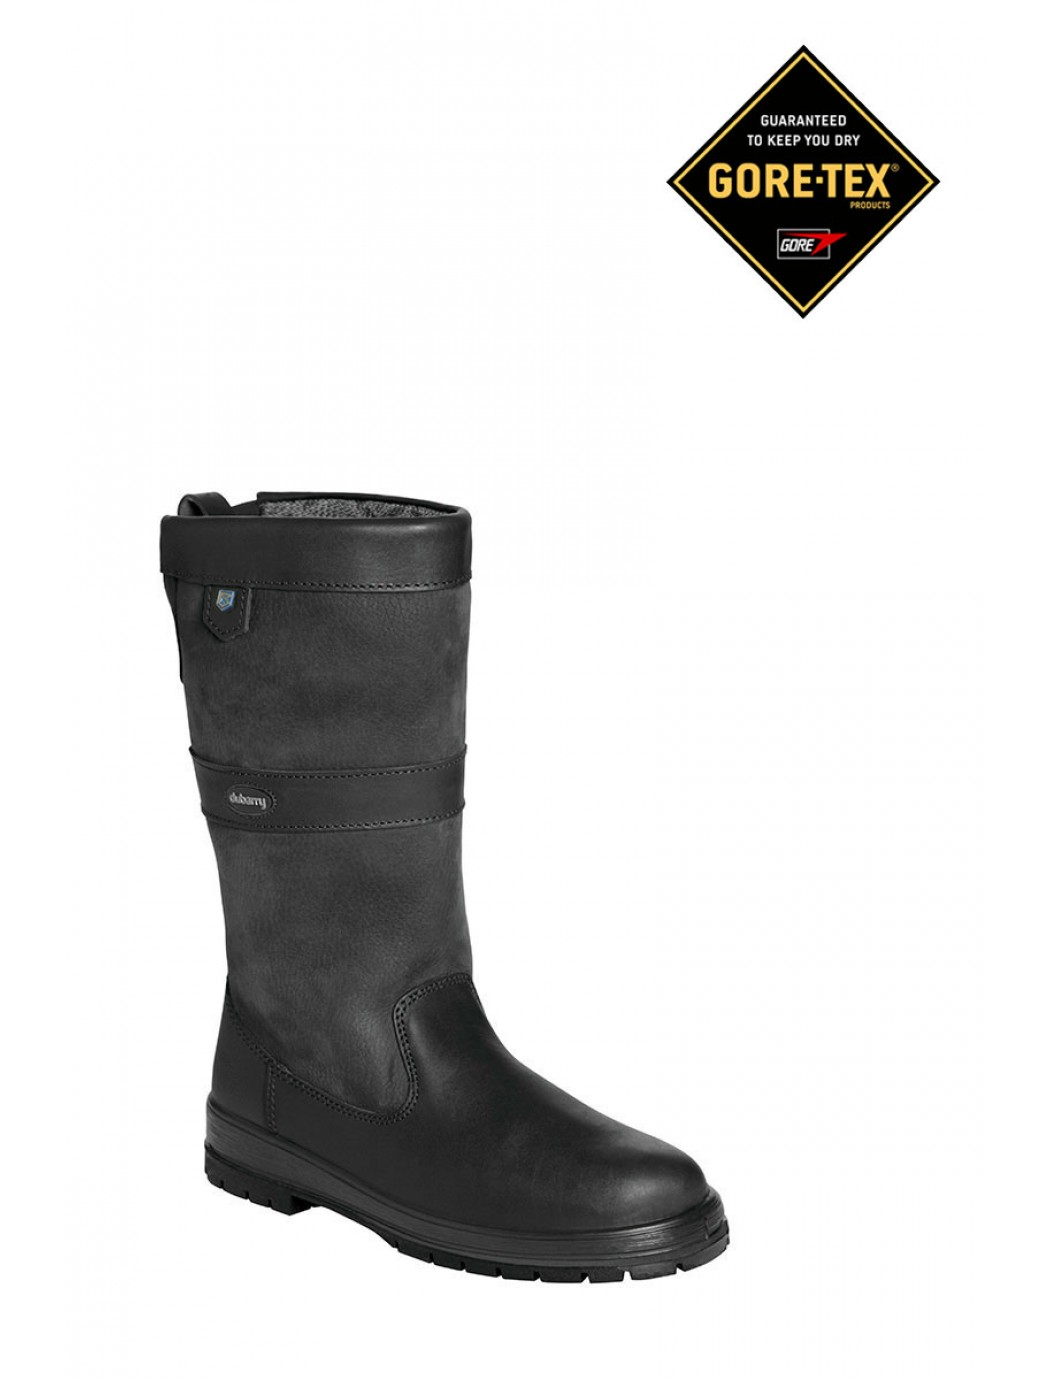 kildare-country-boots-black